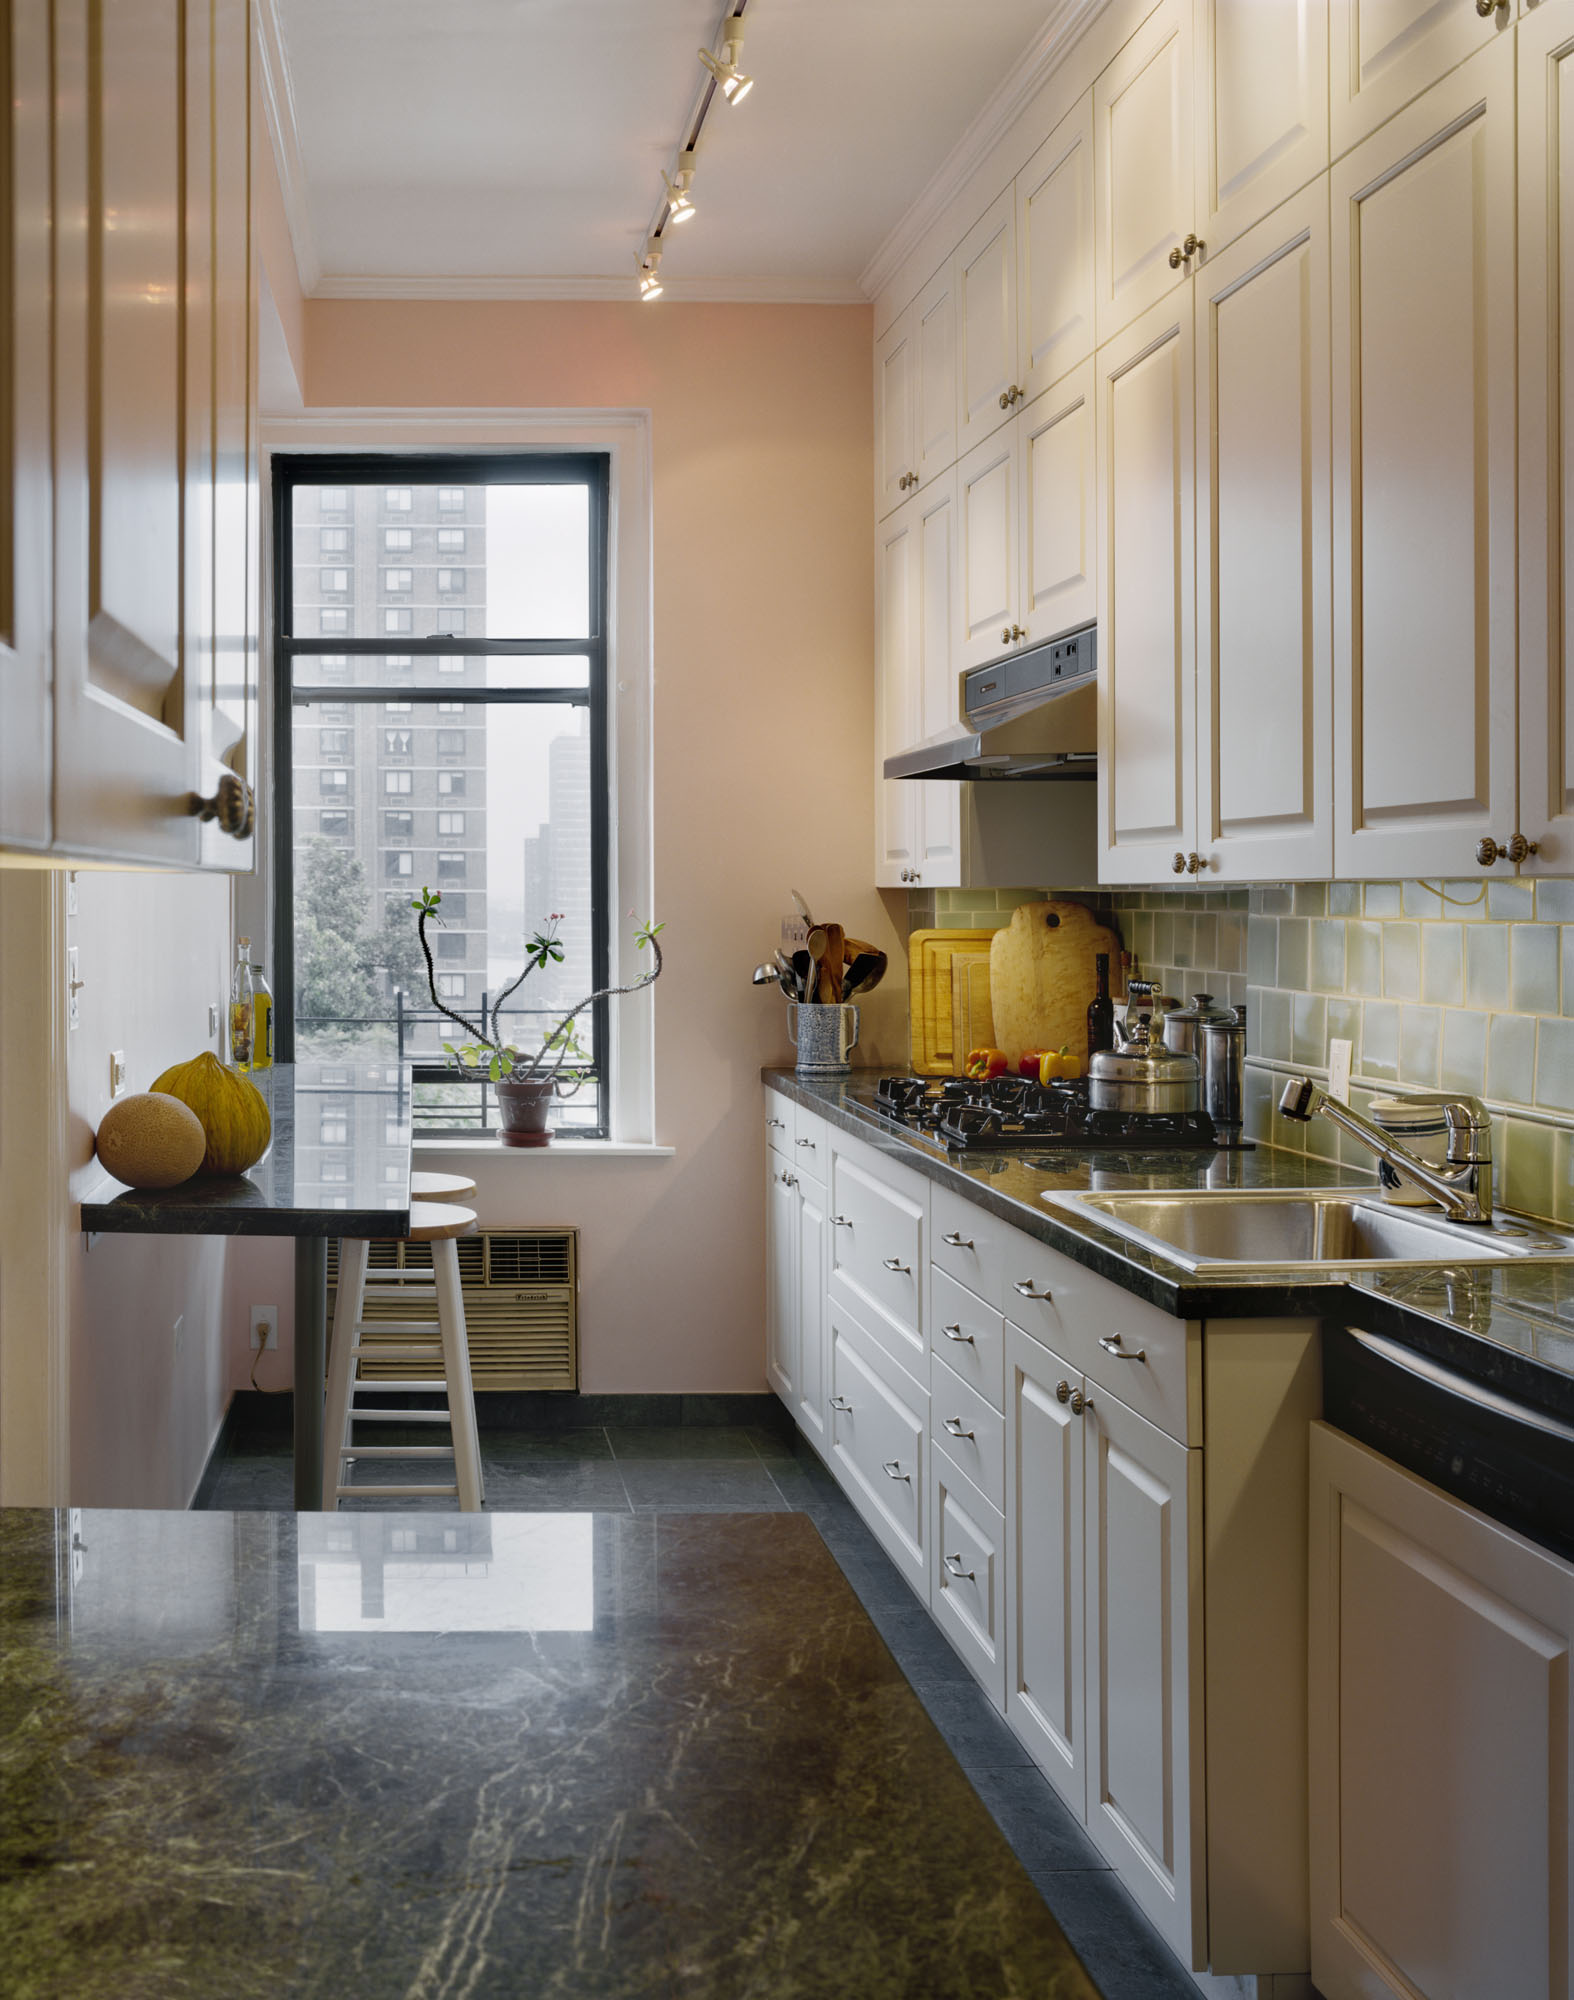 Kitchen, East 94th Street, NY, NY